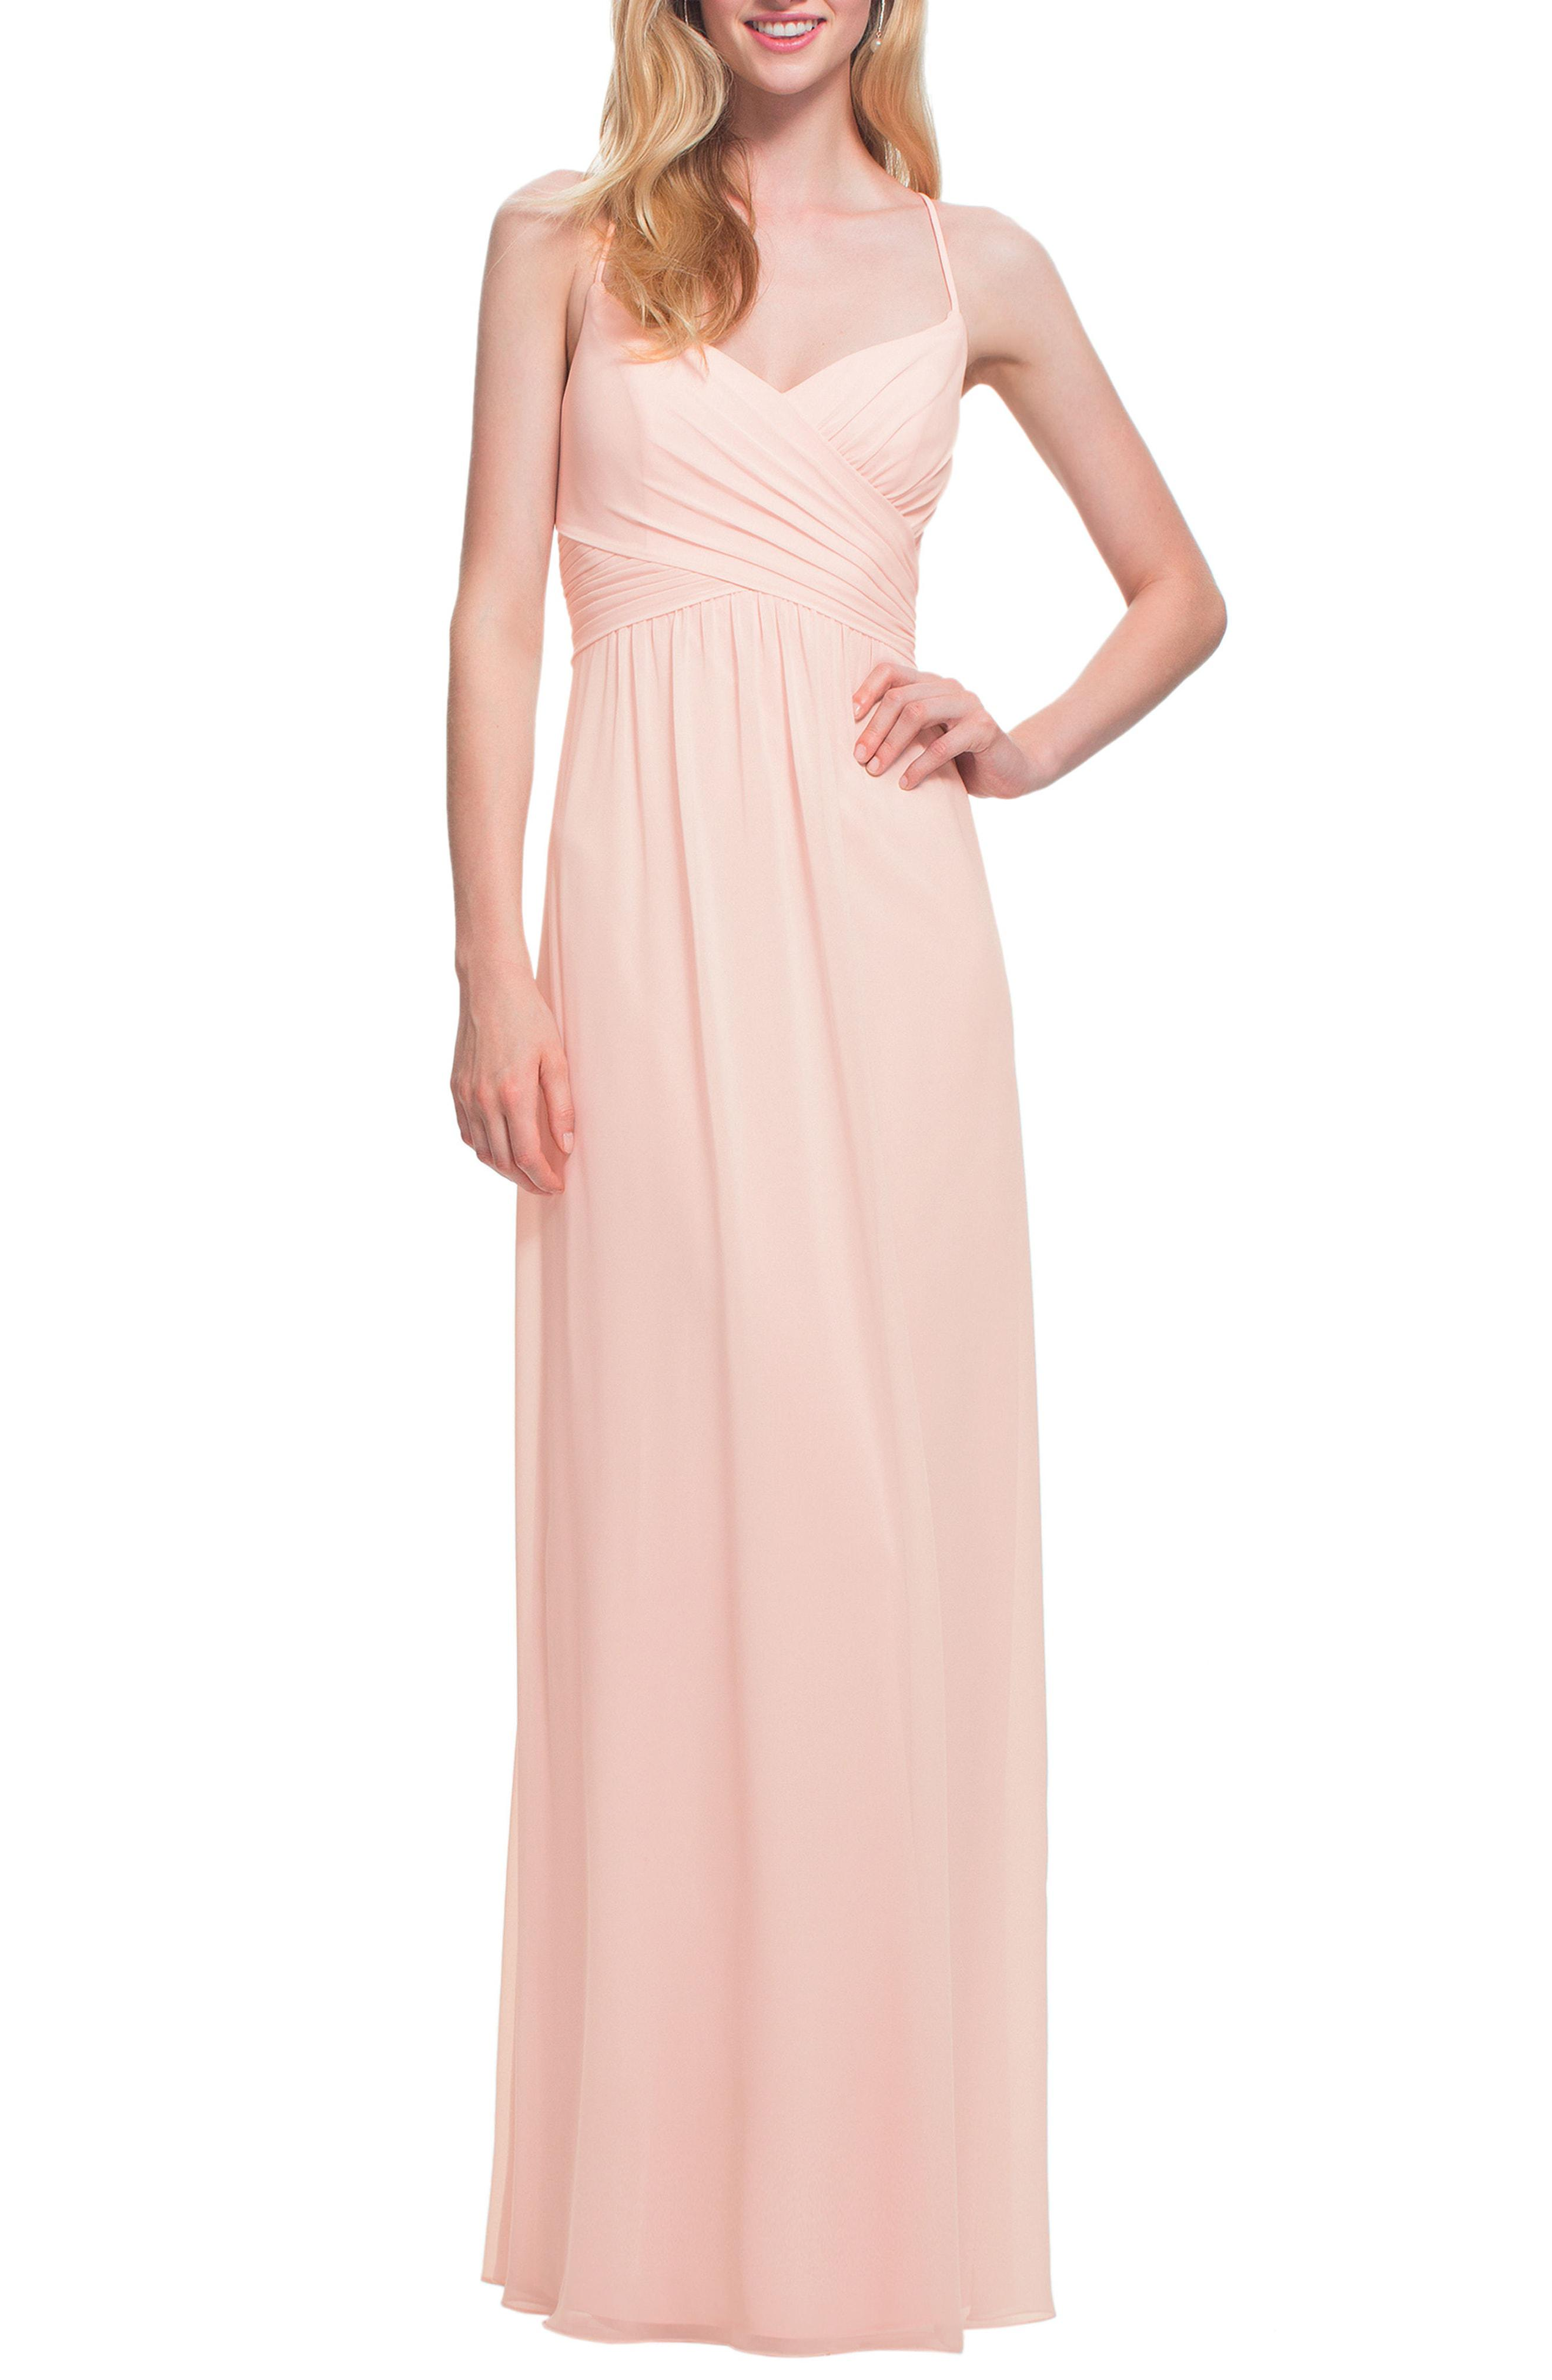 3634d8dedf1 Lyst - Bill Levkoff   Surplice Neck Chiffon Gown in Pink